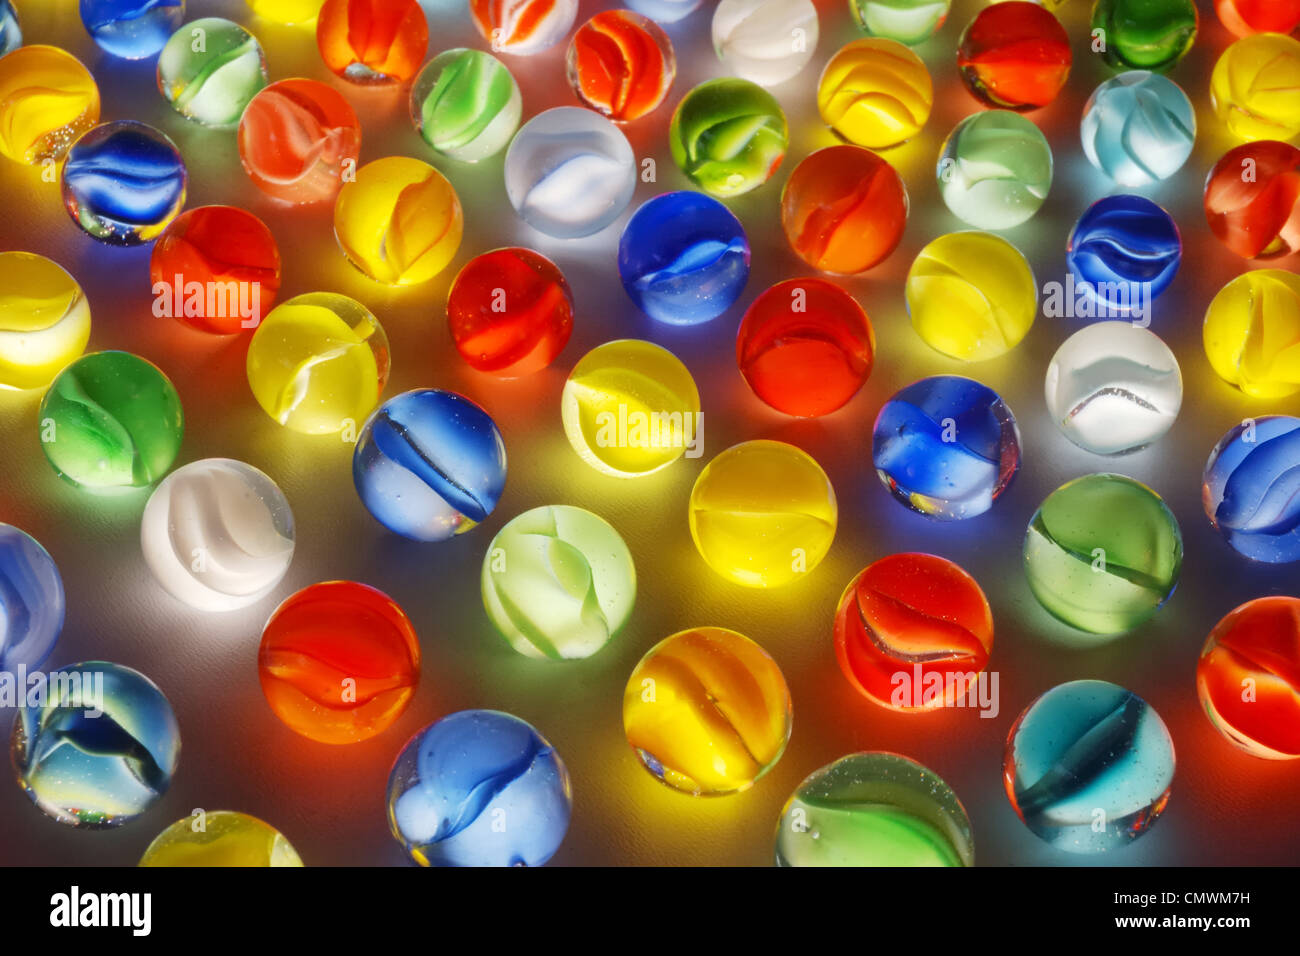 colorful glass marbles - Stock Image